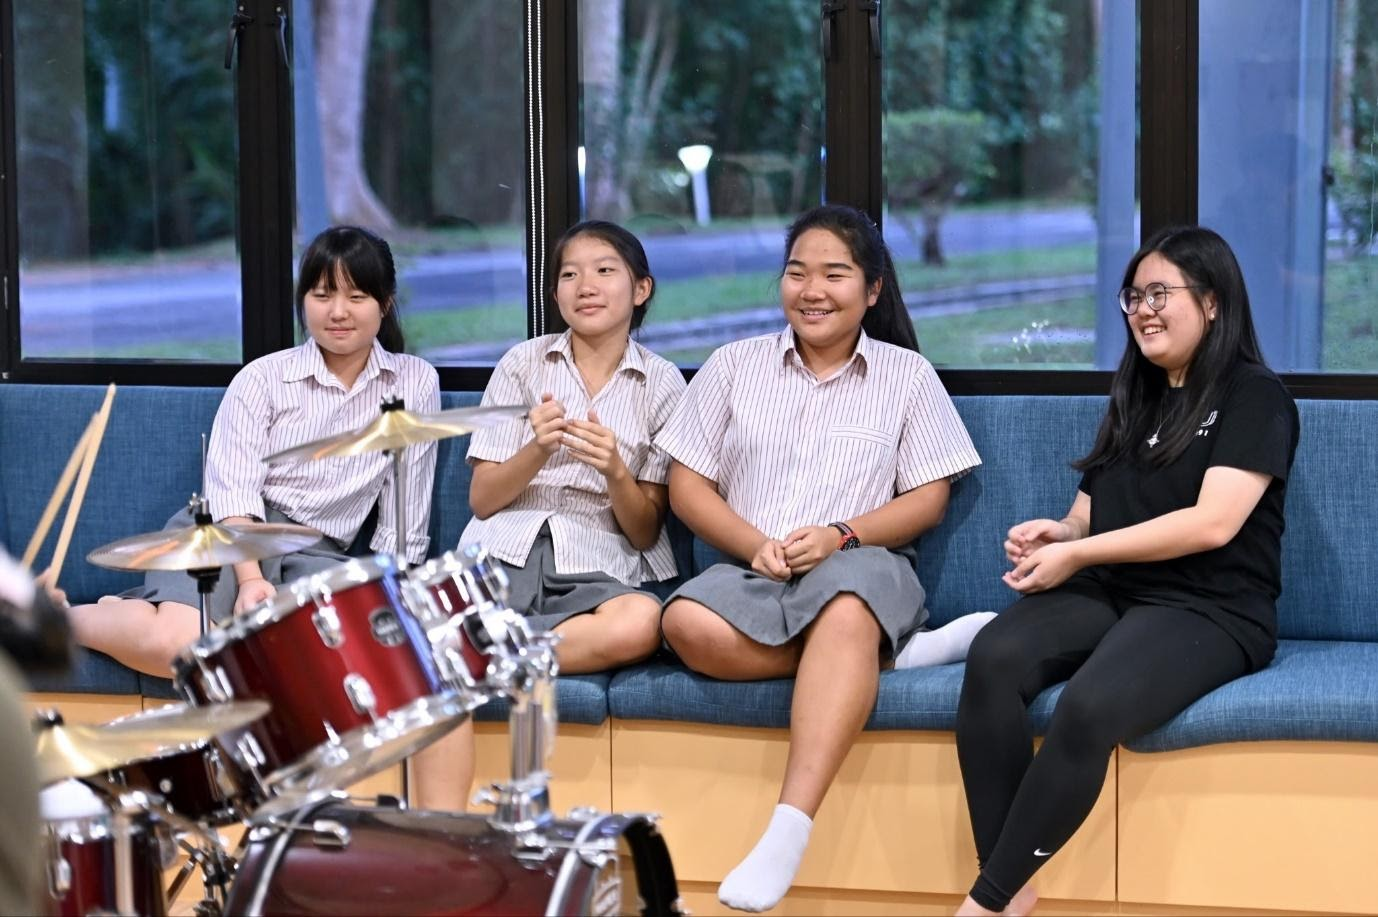 KTJ's boarding sets students up for at University, by developing key skills such as independence, discipline and tolerance.